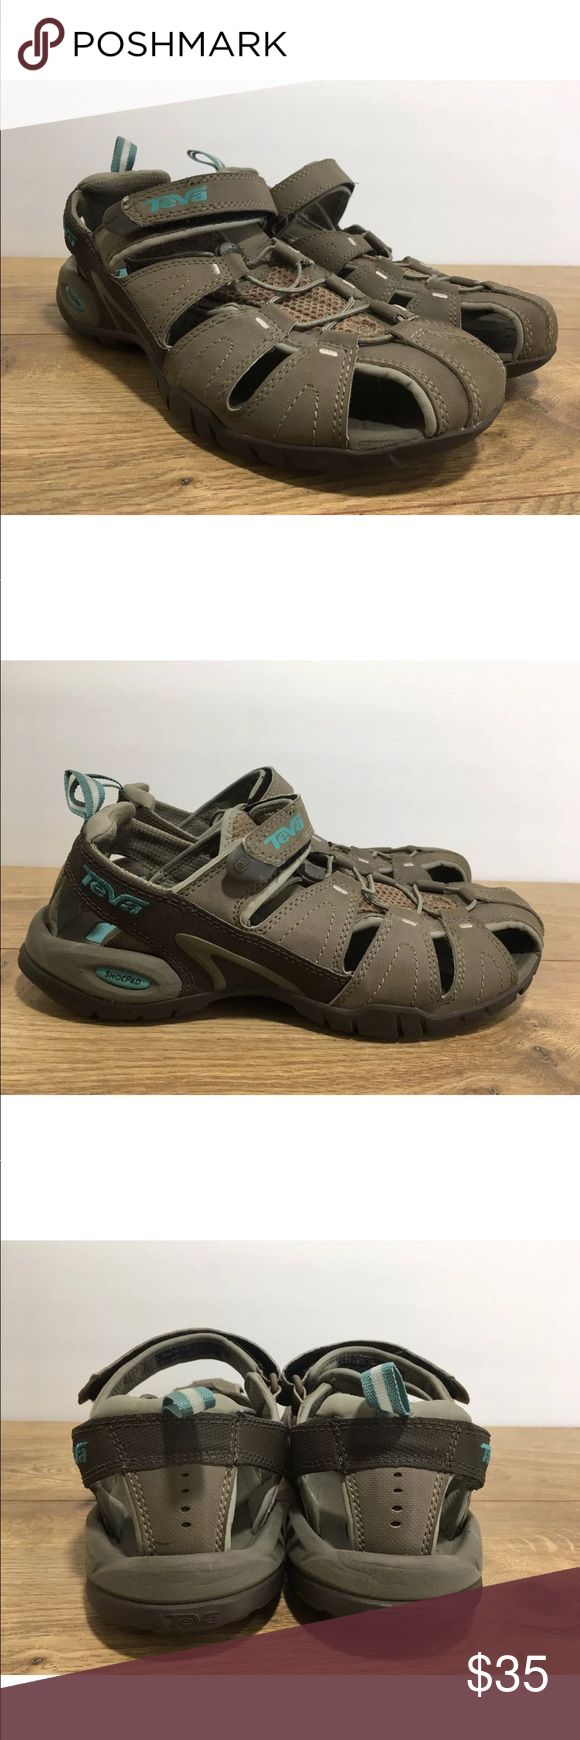 Teva Womens Tan Forebay Sandals Size 8.5 -K8 Teva tan sports sandal with hook and loop fastener strap size 8.5 in very good condition these shoes have only been used a handful of times and still have a ton of life left in them.   please see photos for color, style and condition. Teva Shoes Sandals